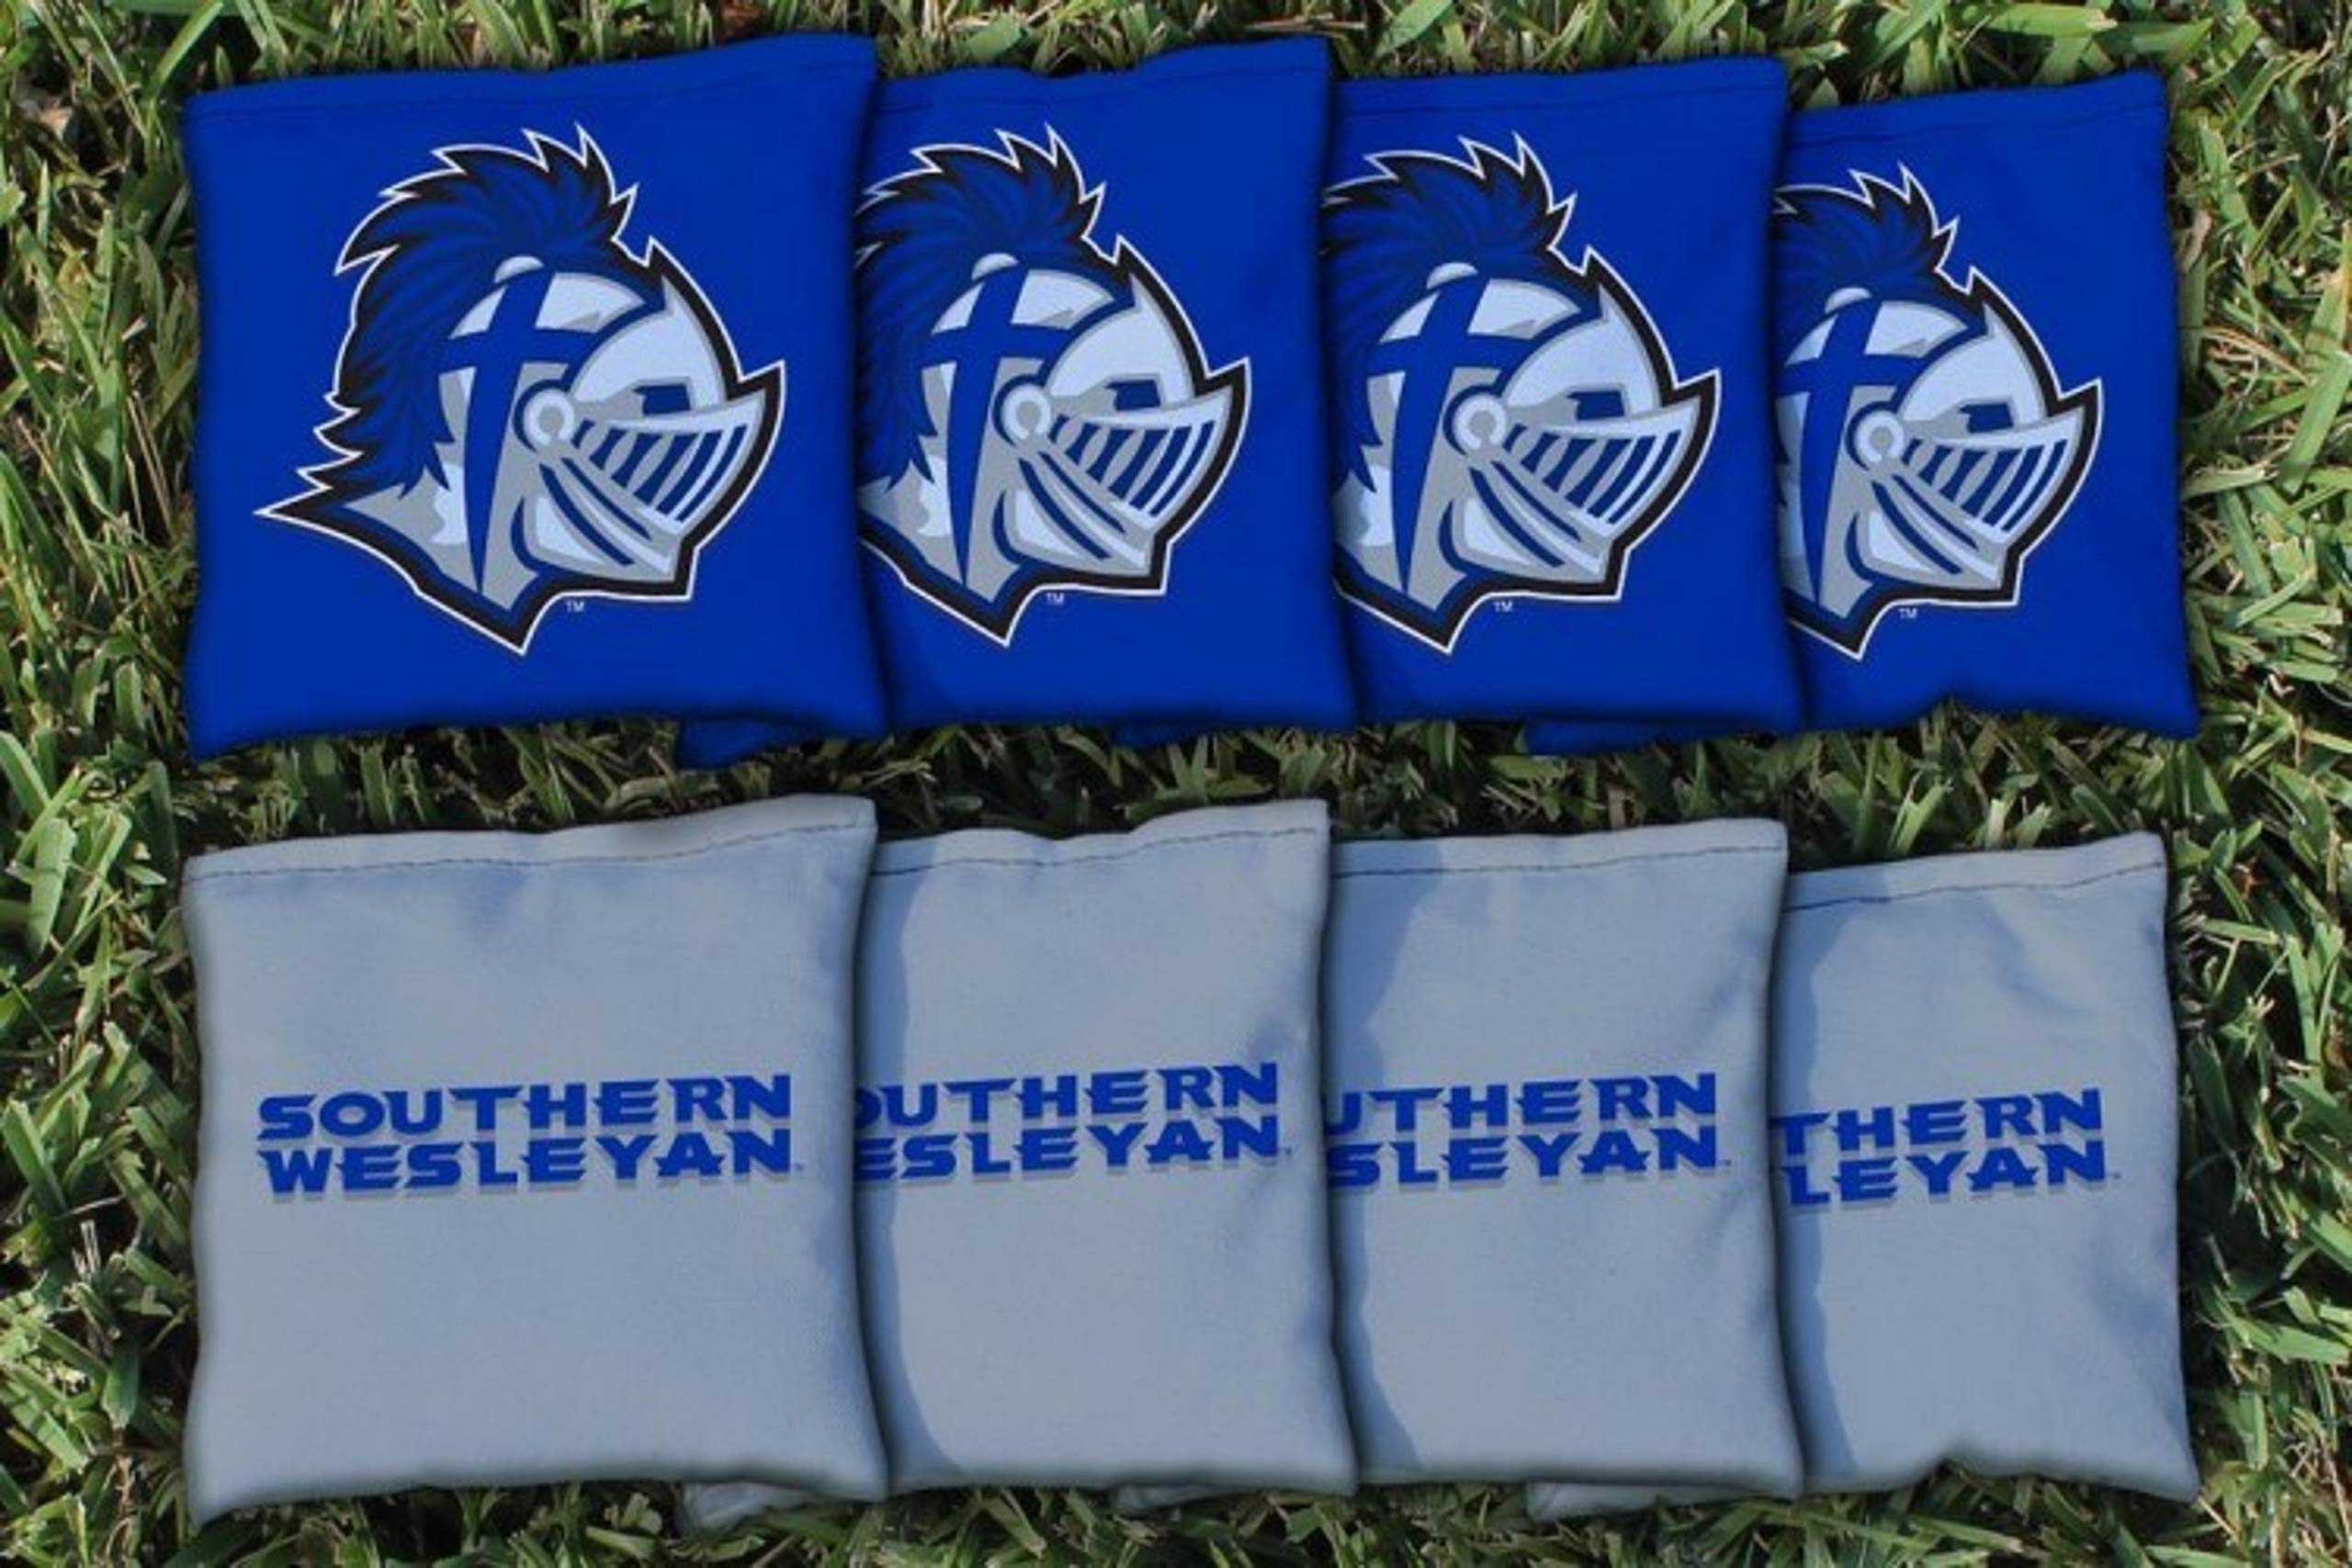 Victory Tailgate NCAA Collegiate Regulation Cornhole Game Bag Set (8 Bags Included, Corn-Filled) - Southern Wesleyan Warriors by Victory Tailgate